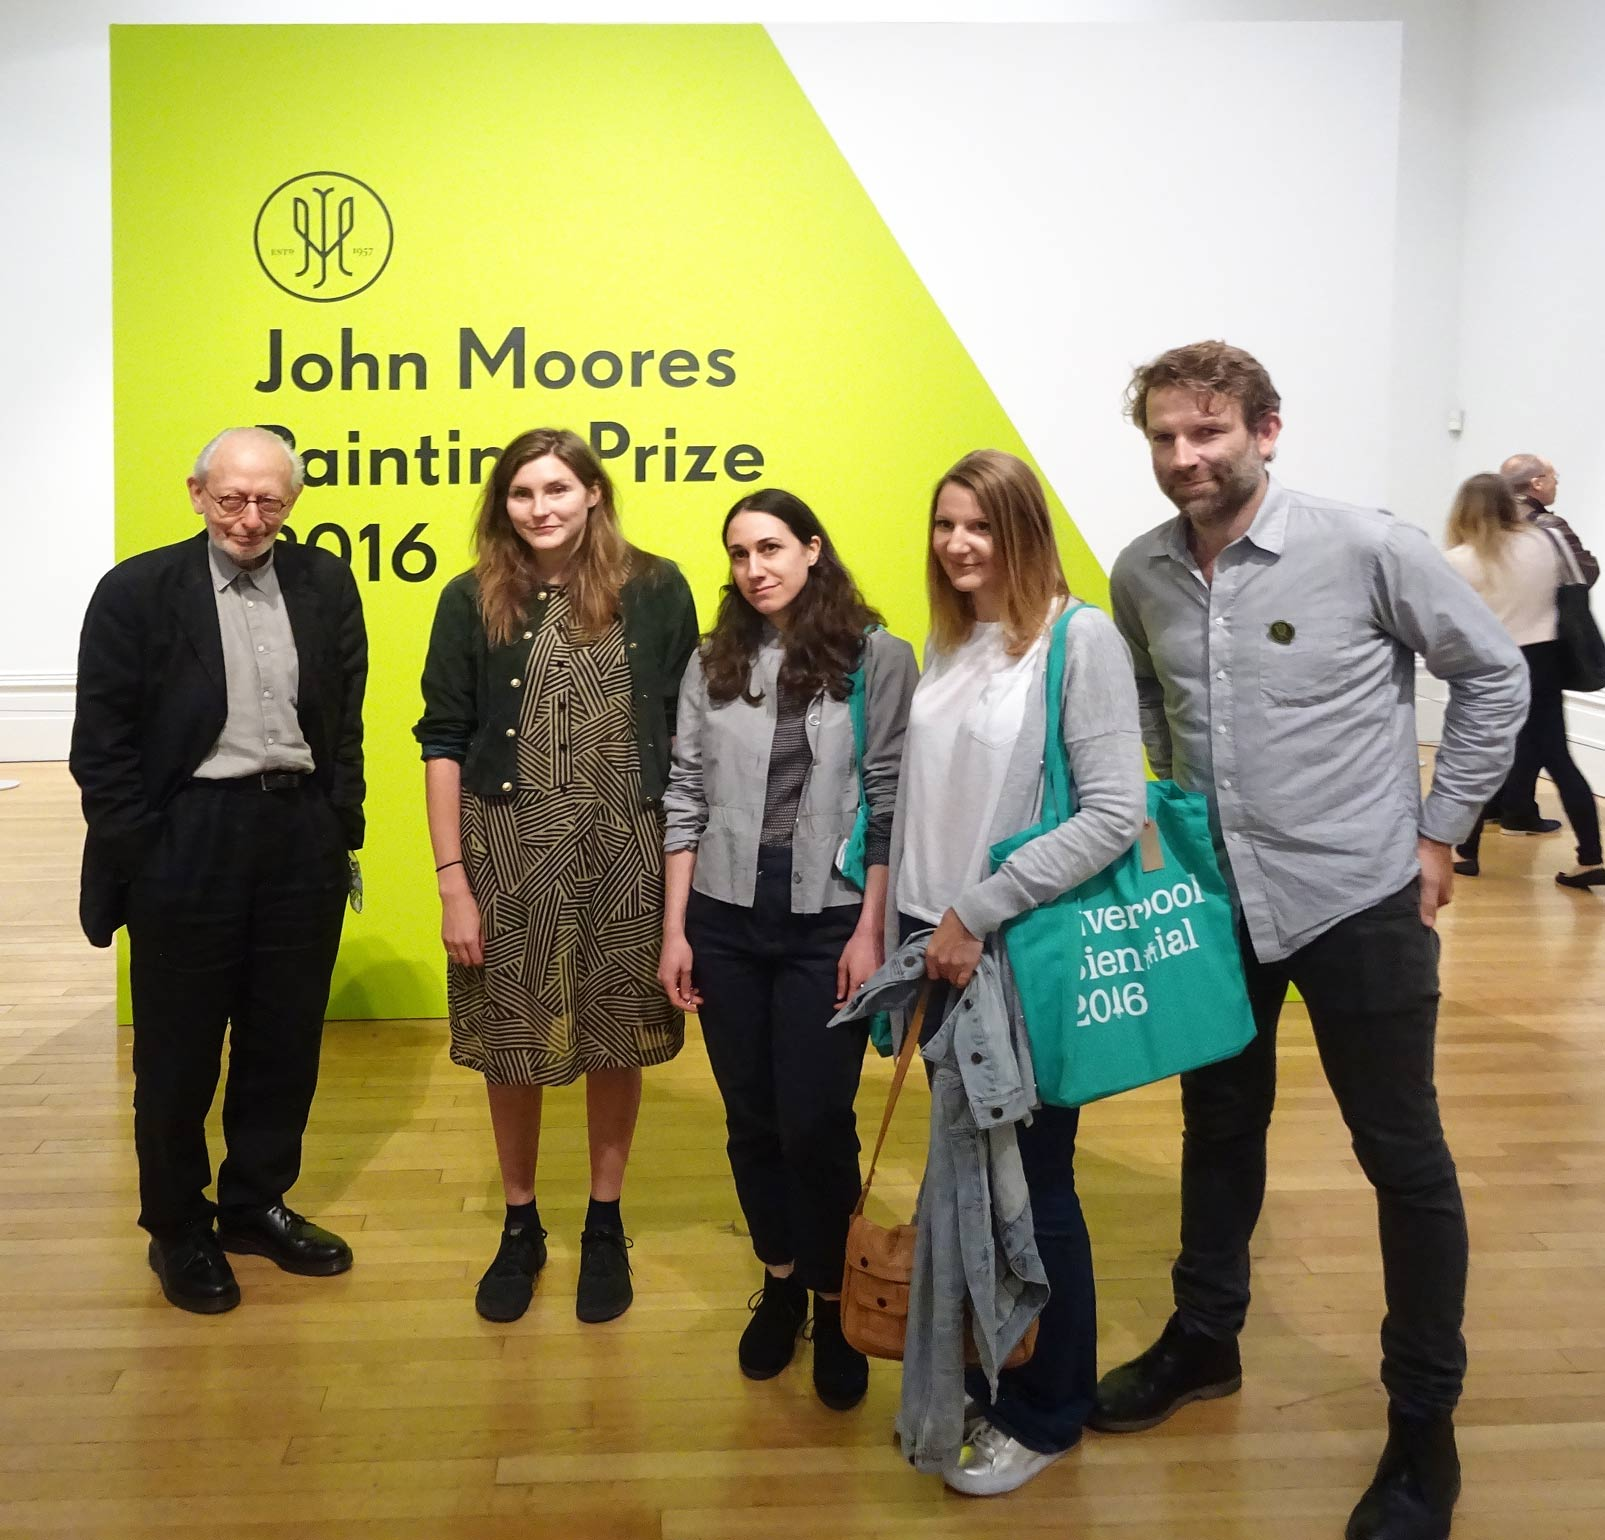 2016 Prize winners John Moores Painter Prize